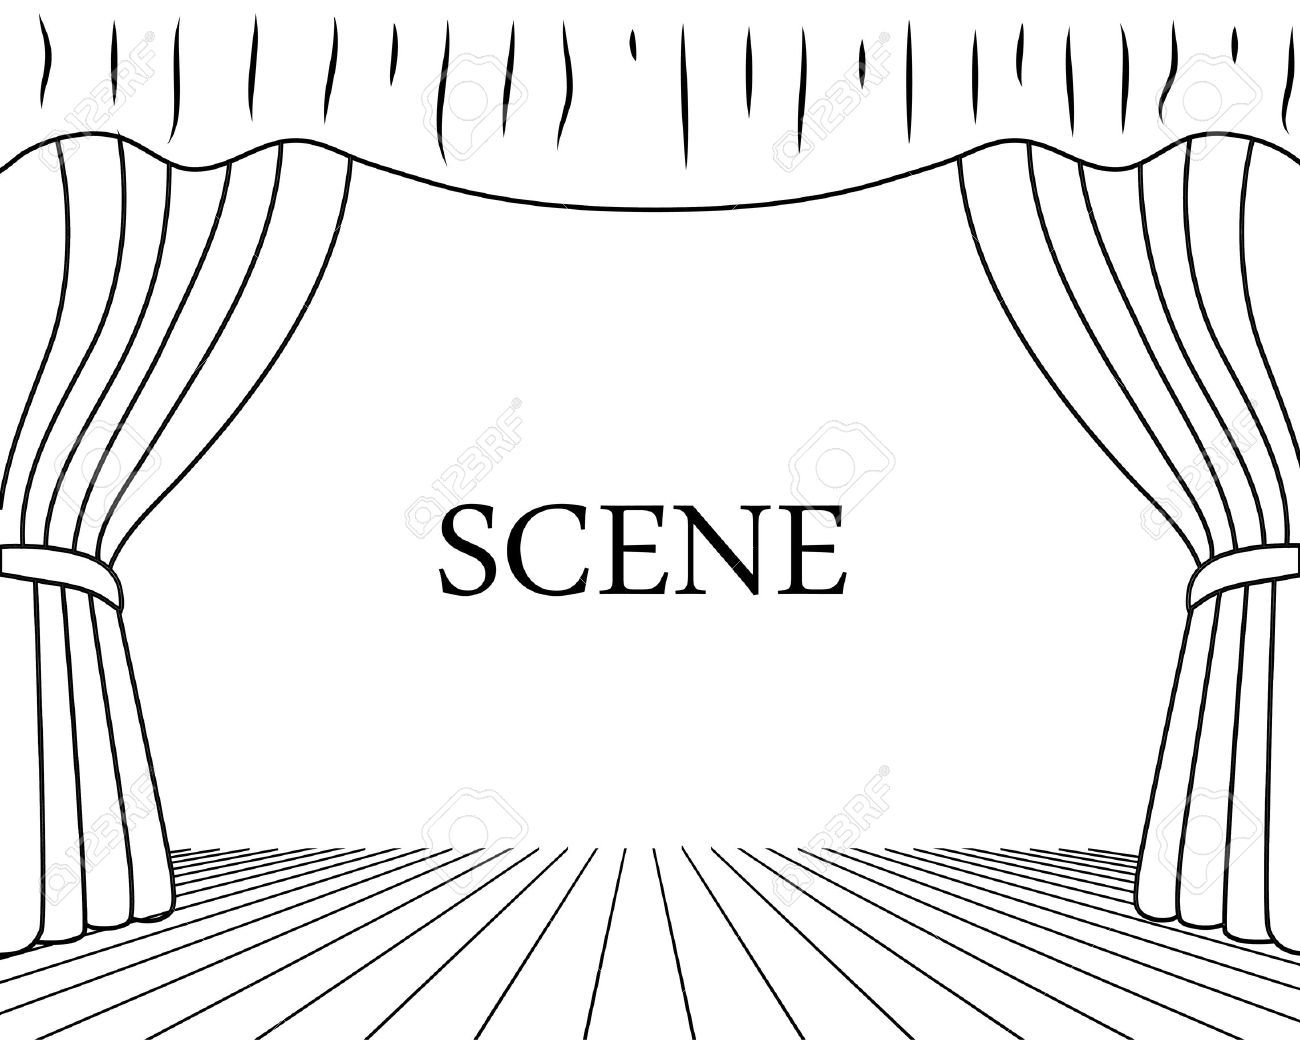 theatrical scene drawing on a white background | Theatre